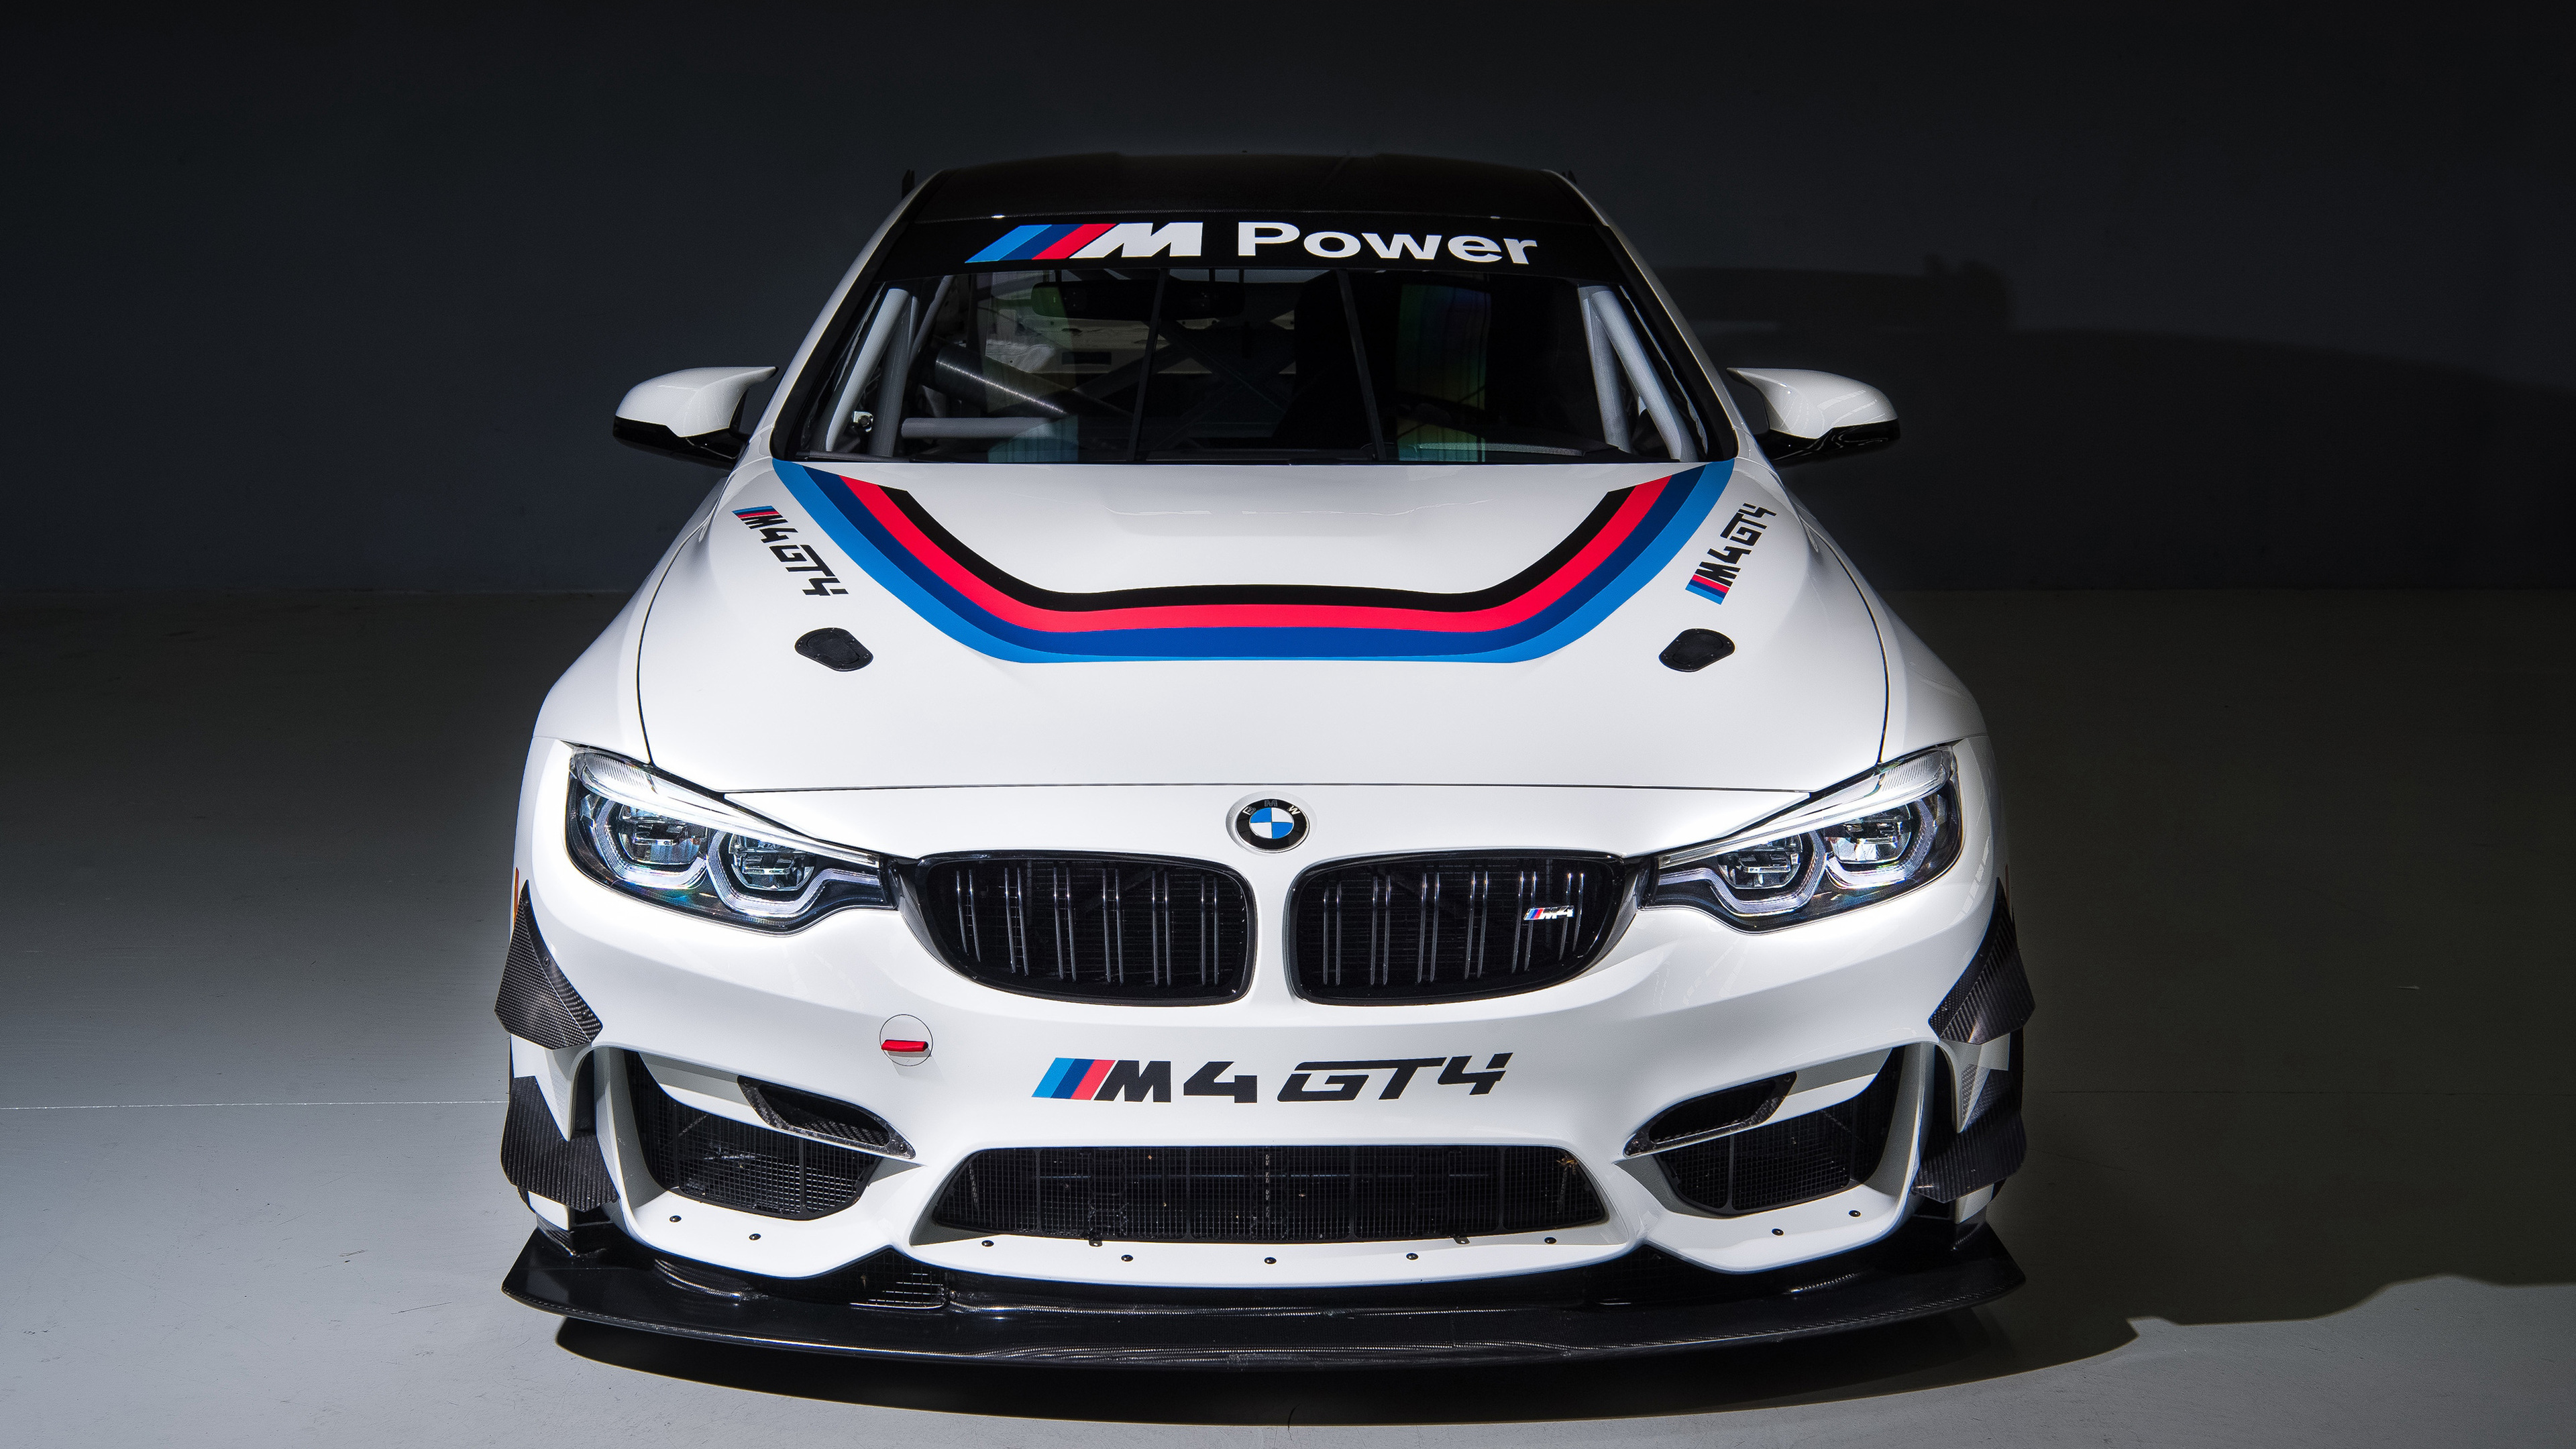 2018 bmw m4 gt4 1539108769 - 2018 Bmw M4 GT4 - hd-wallpapers, gt wallpapers, cars wallpapers, bmw wallpapers, bmw m4 wallpapers, 4k-wallpapers, 2018 cars wallpapers